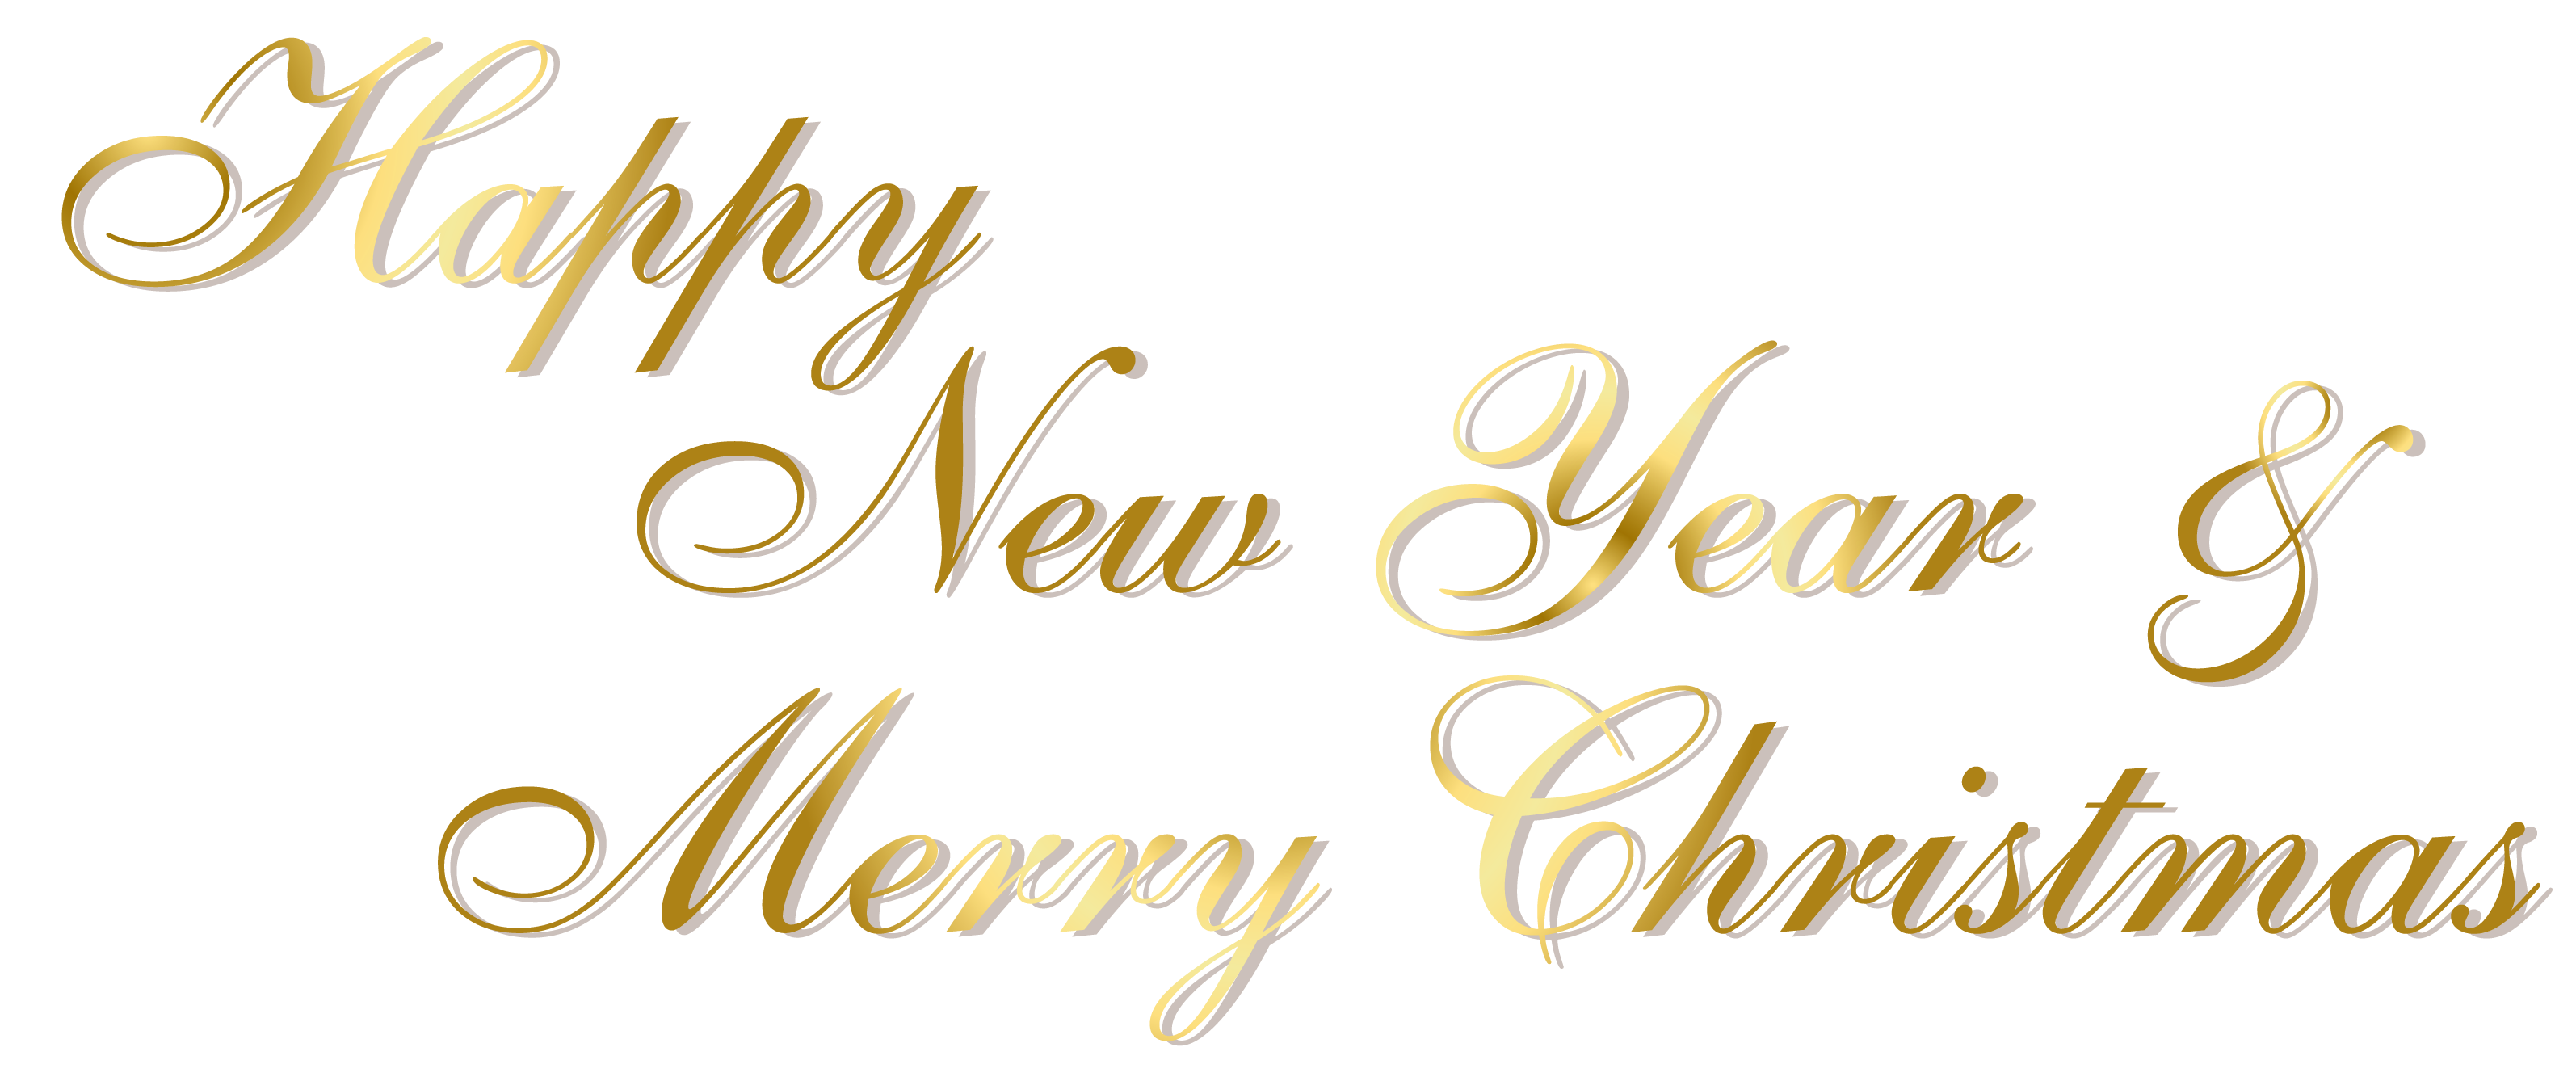 Happy new year 2016 png. Gold and merry christmas